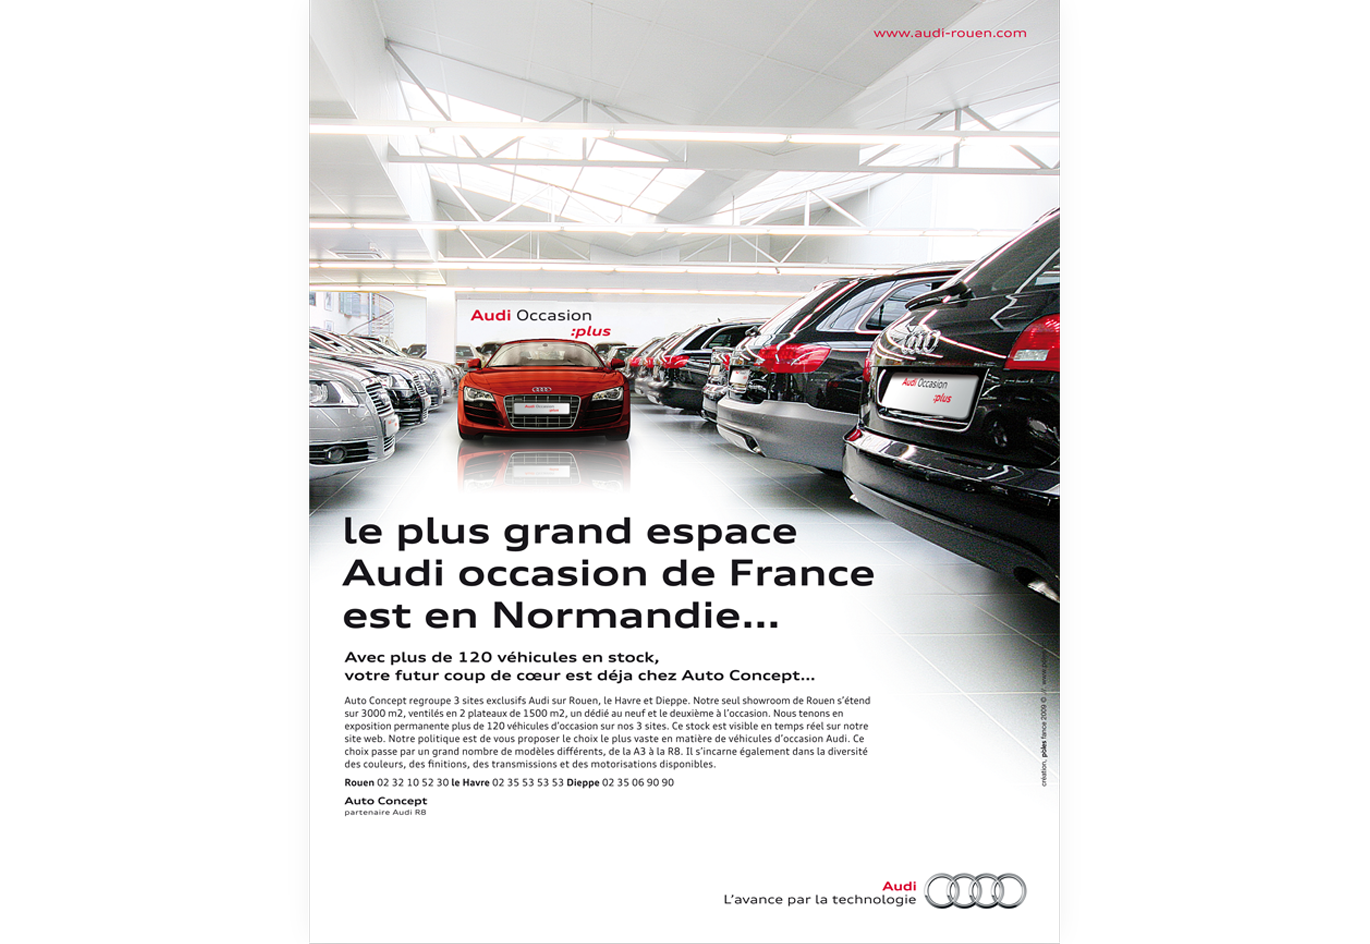 affiche publicitaire rouen audi occasion p les agence communication rouen. Black Bedroom Furniture Sets. Home Design Ideas